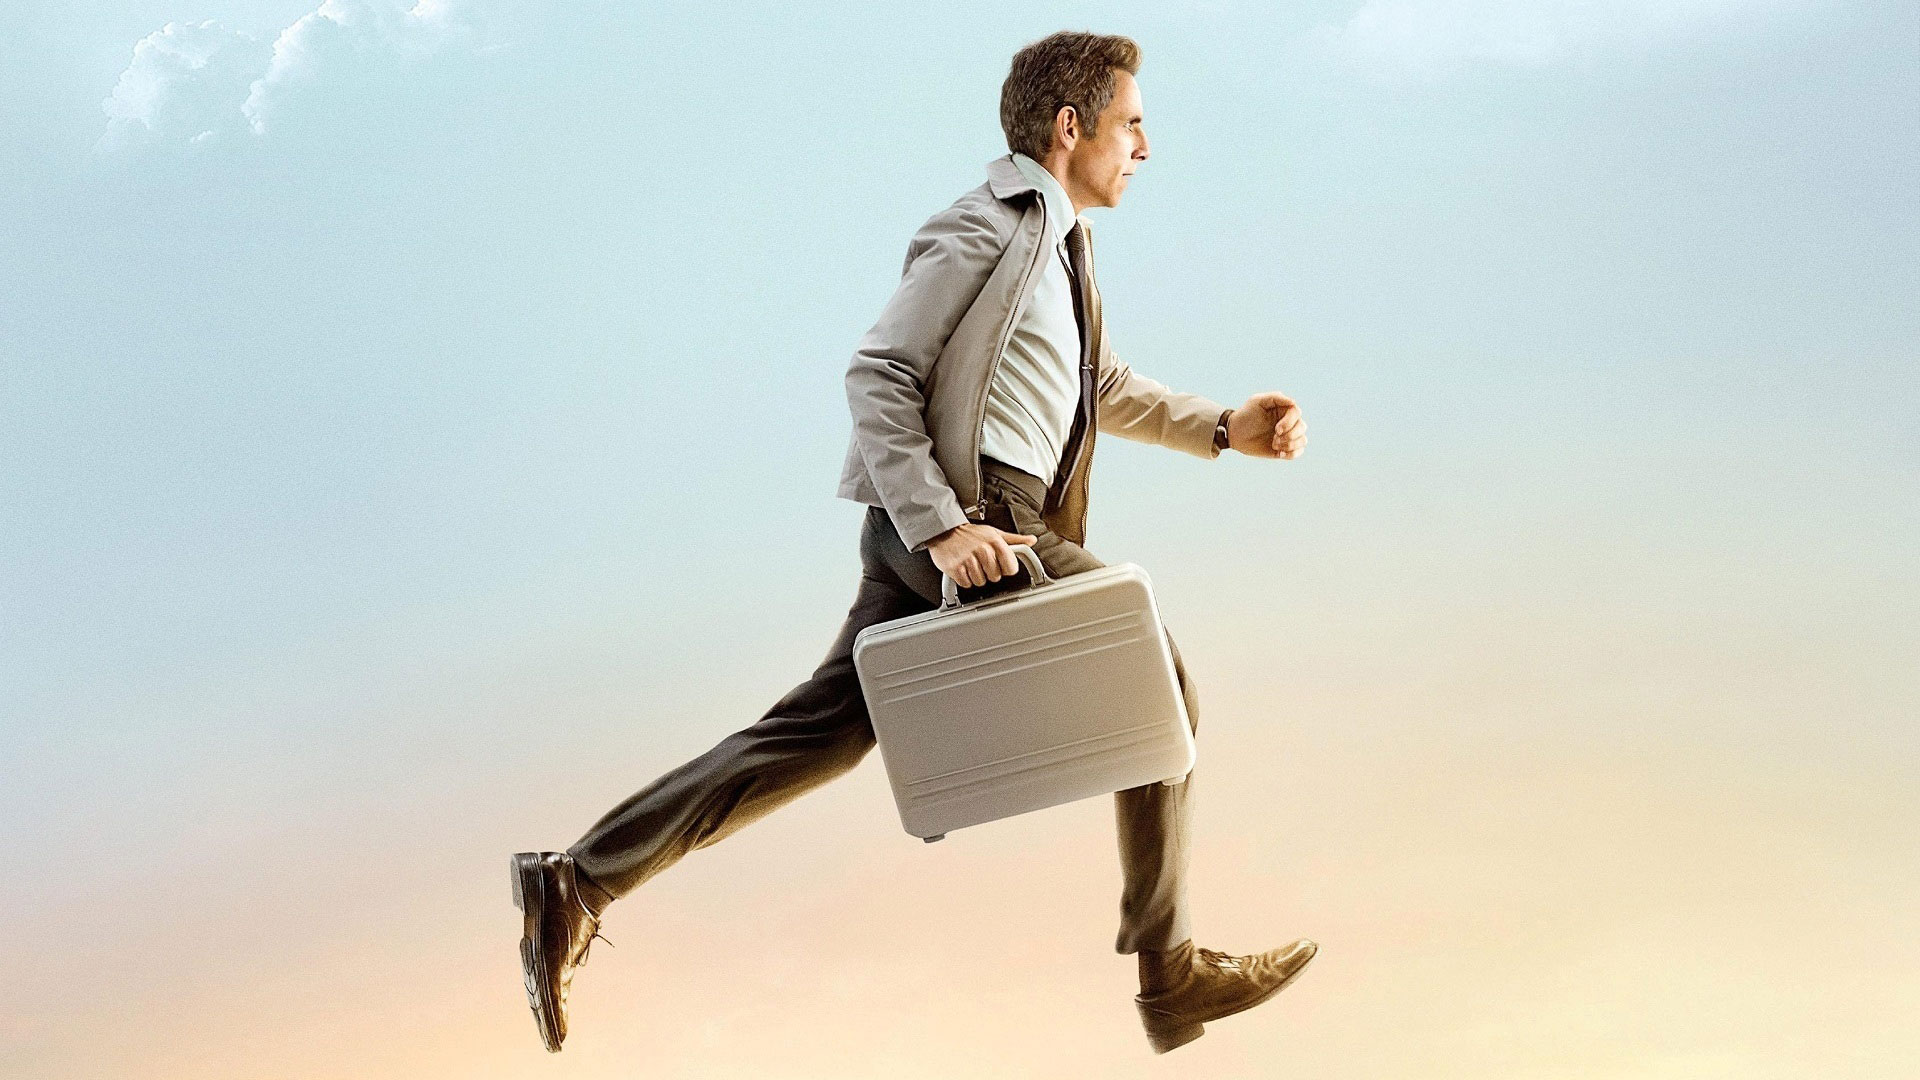 The Secret Life Of Walter Mitty Wallpapers Pictures Images